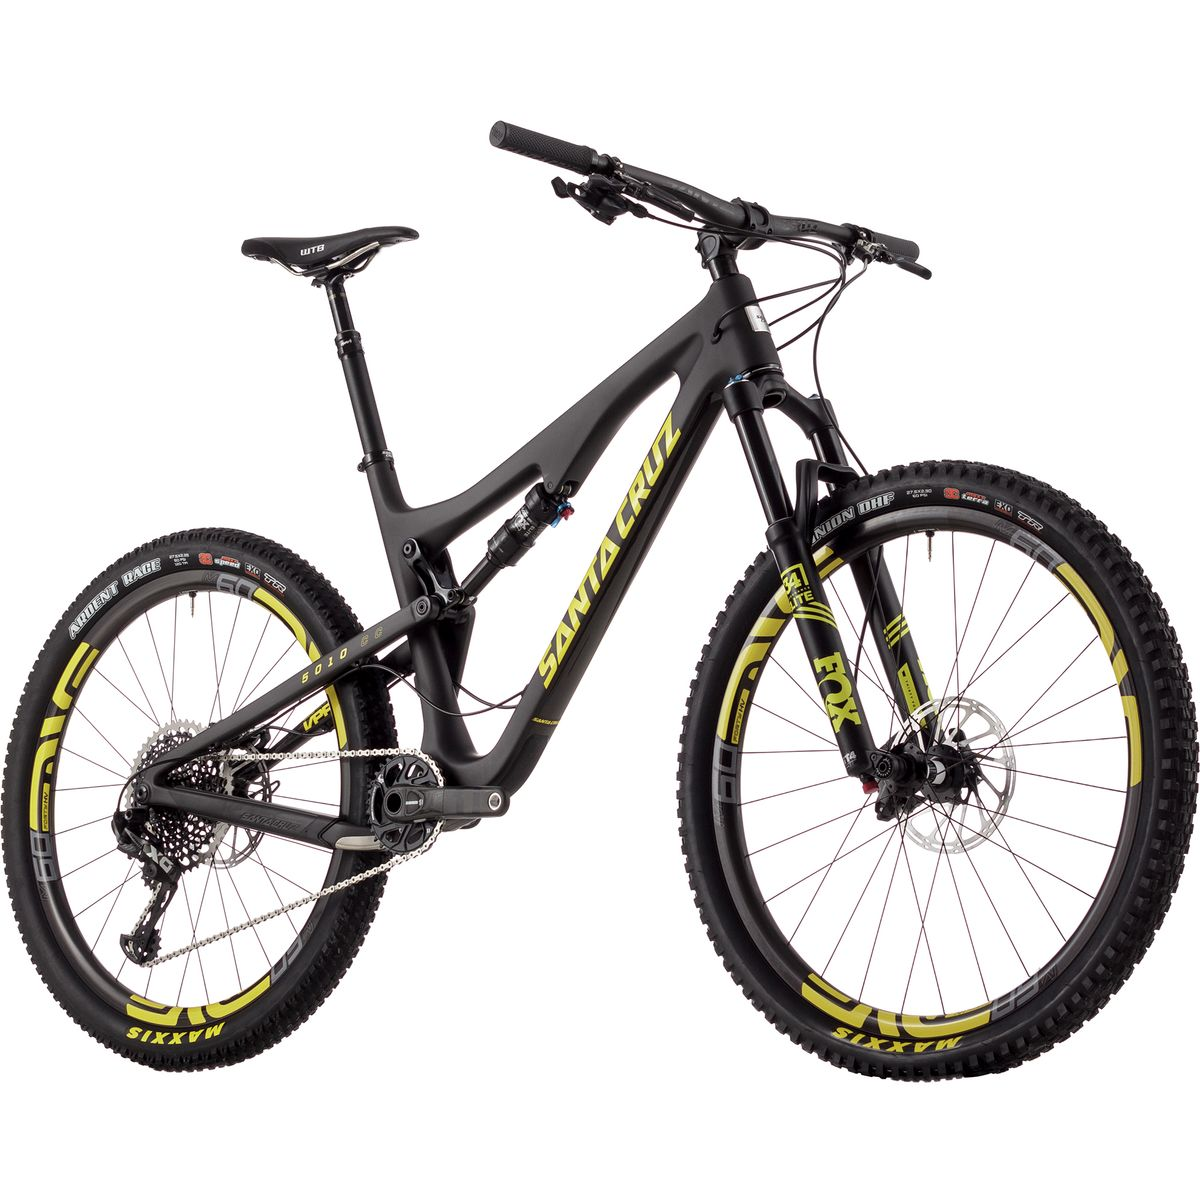 Santa Cruz Bicycles 5010 2.0 Carbon CC X01 Eagle ENVE